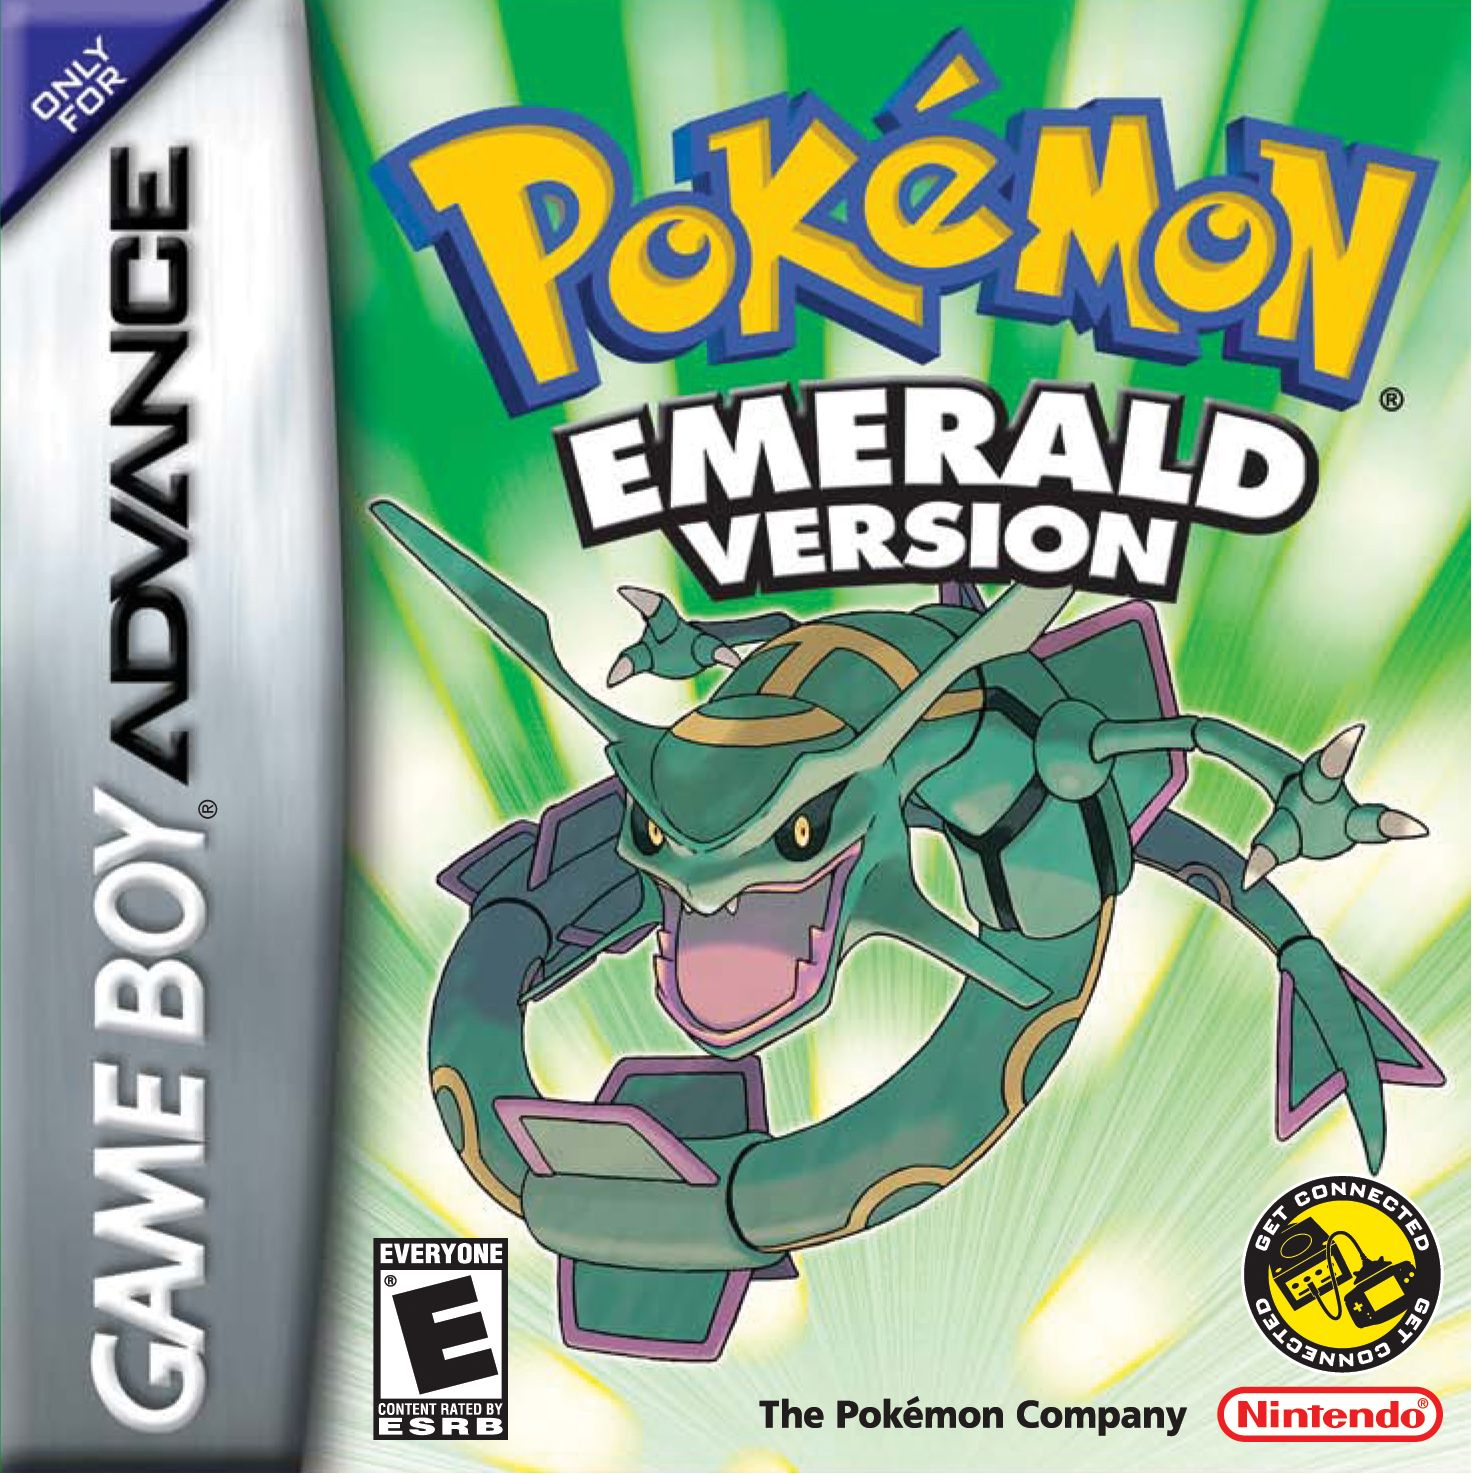 Pokemon Emerald With Images Pokemon Emerald Pokemon Emerald